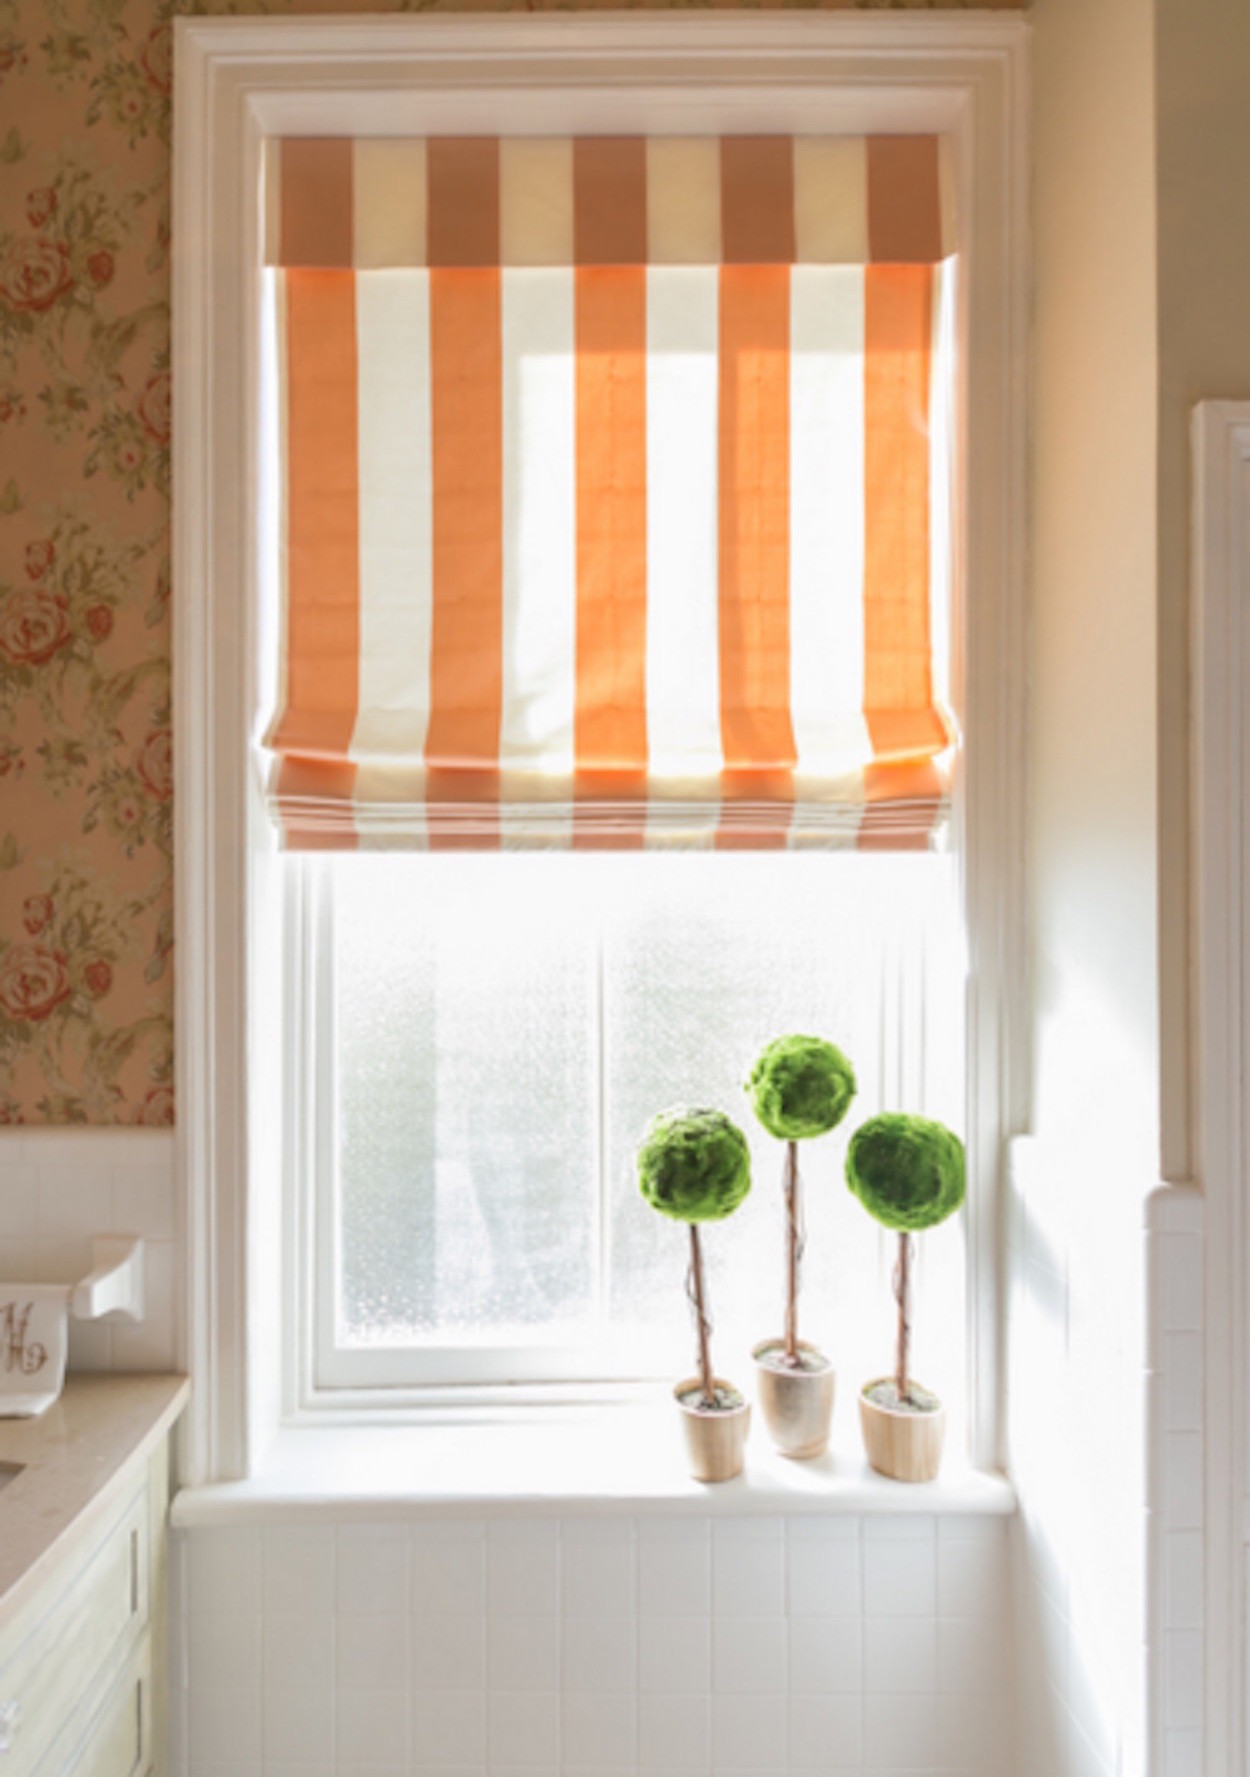 Small Bathroom Window Curtains. 7 Different Bathroom Window Treatments You Might Not Have Thought Of Martha Stewart